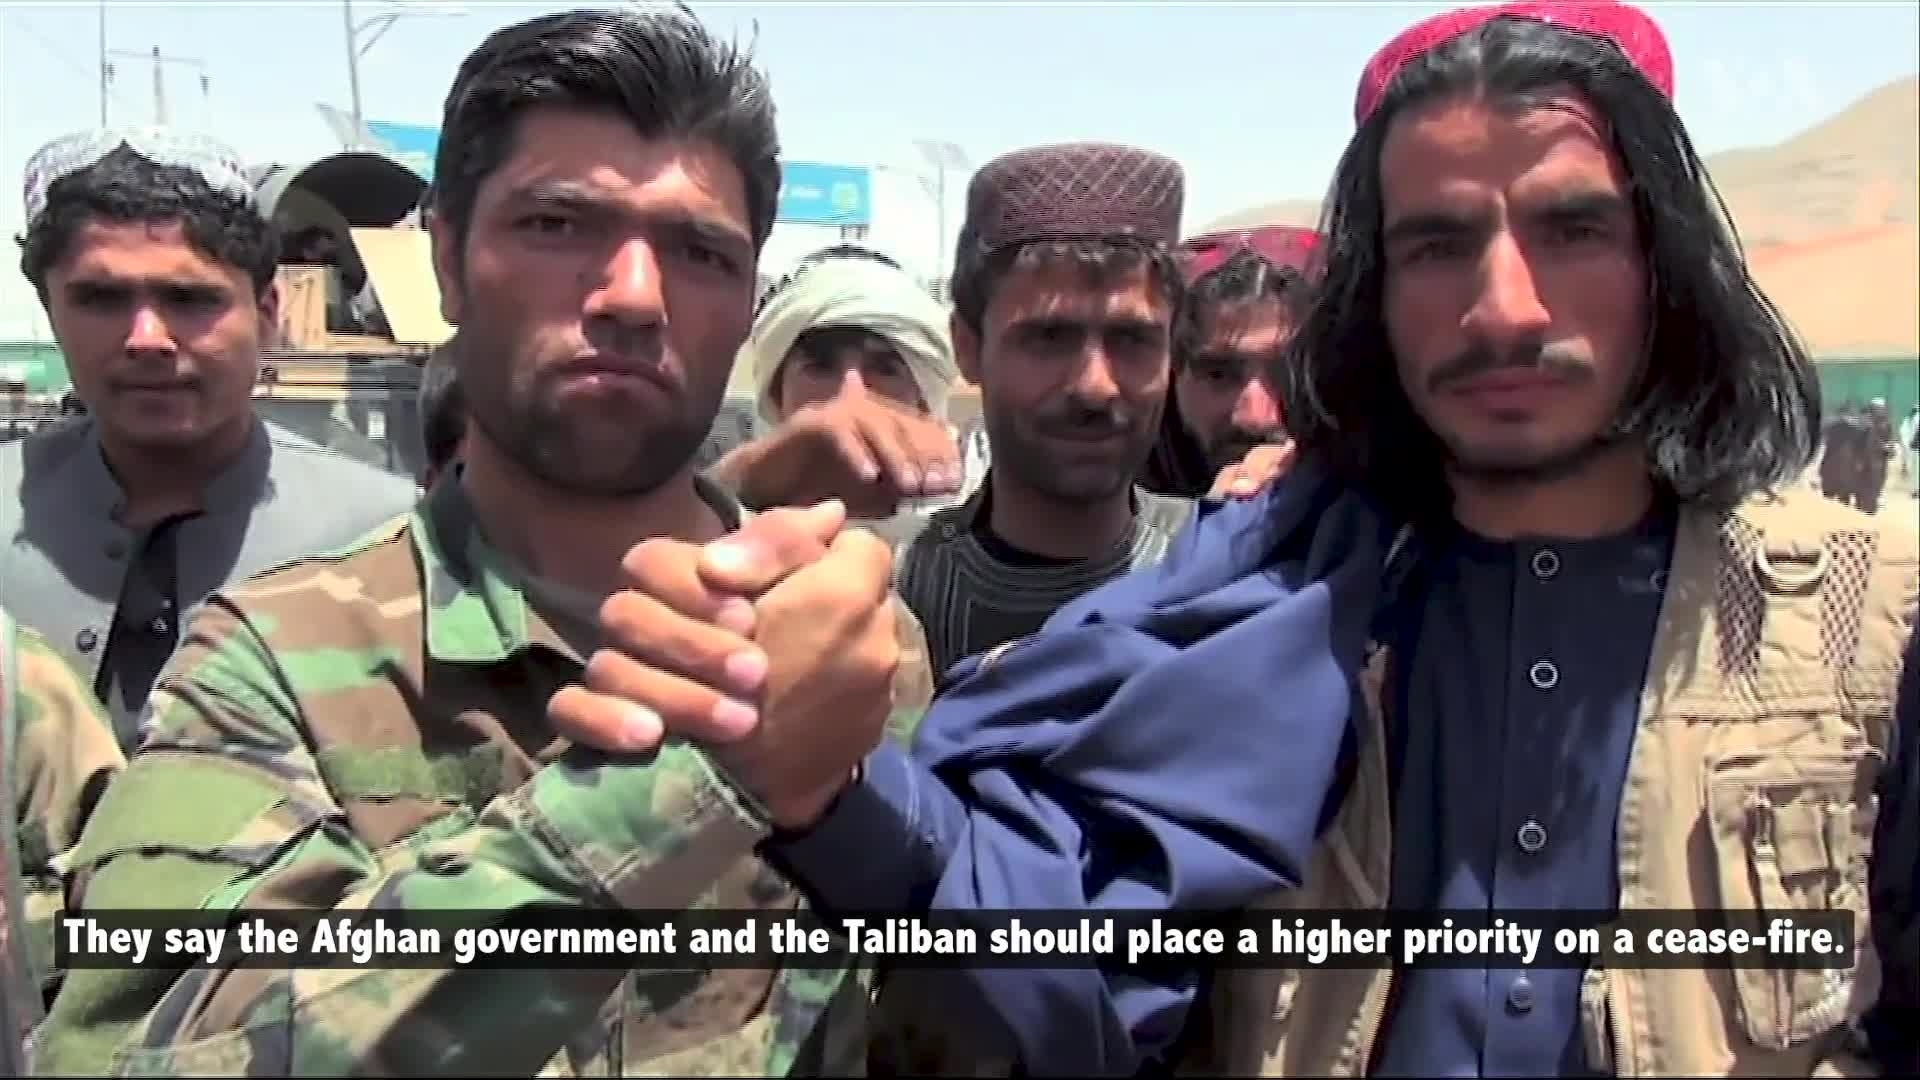 Afghan Civilians: Cease-fire Top Priority for Intra-Afghan Talks